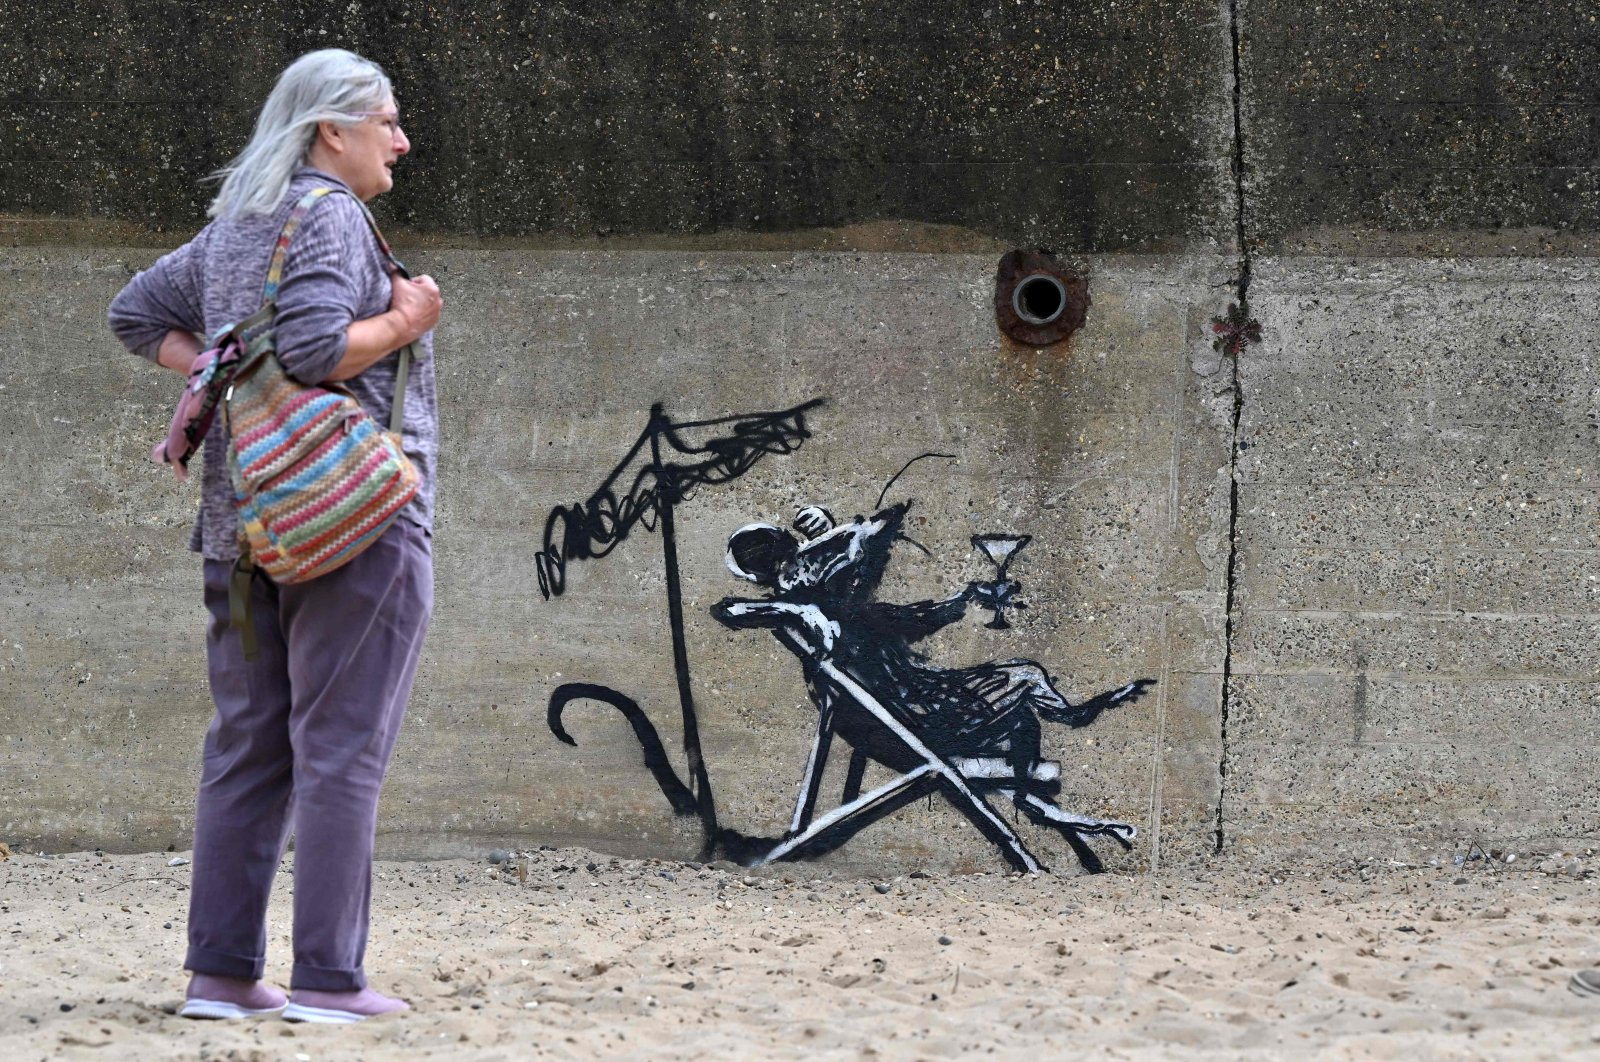 A woman stands beside a graffiti artwork of a rat drinking a cocktail by artist Banksy on a wall at North Beach, Lowestoft, England, Aug. 8, 2021. (AFP Photo)